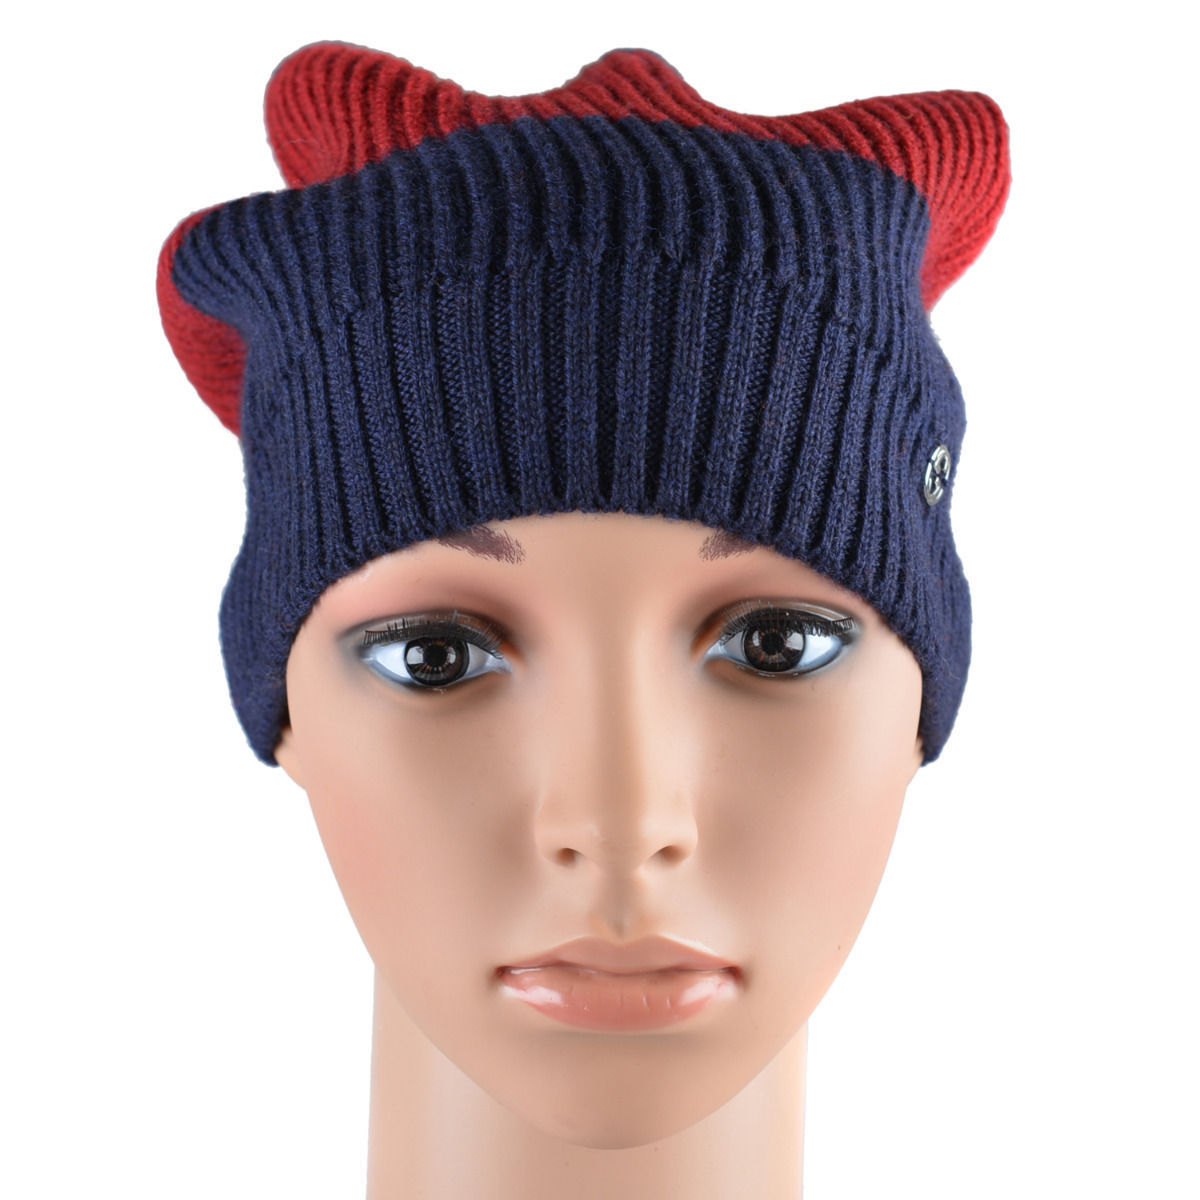 37825739d ONE MODA  Gucci Unisex Multi-Color 100% Wool Beanie Hat One Size ...